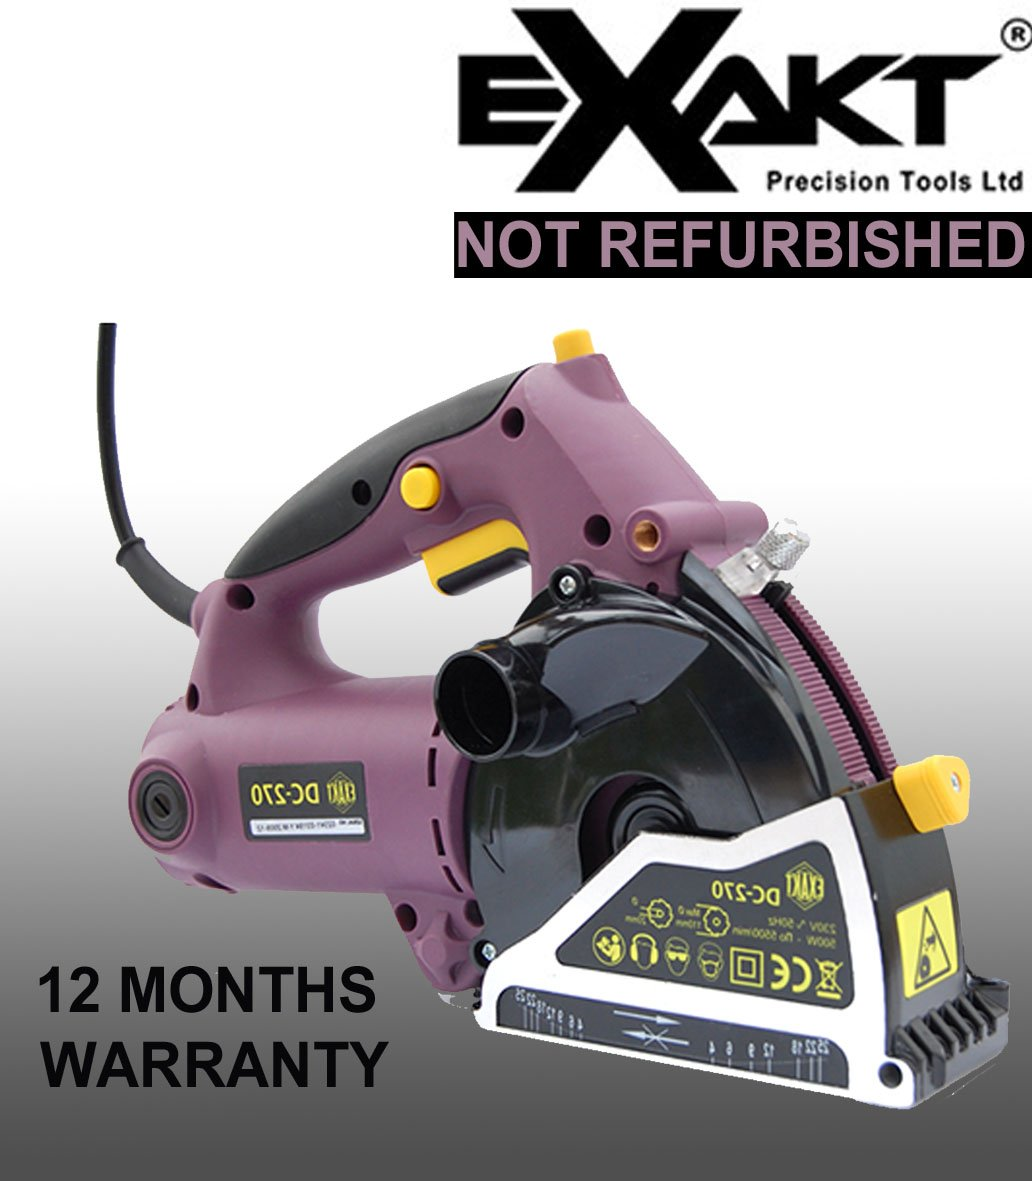 Exakt Saw Dc270 Brand New Deep Cut Cuts Up To 26mm Co Uk Diy Tools